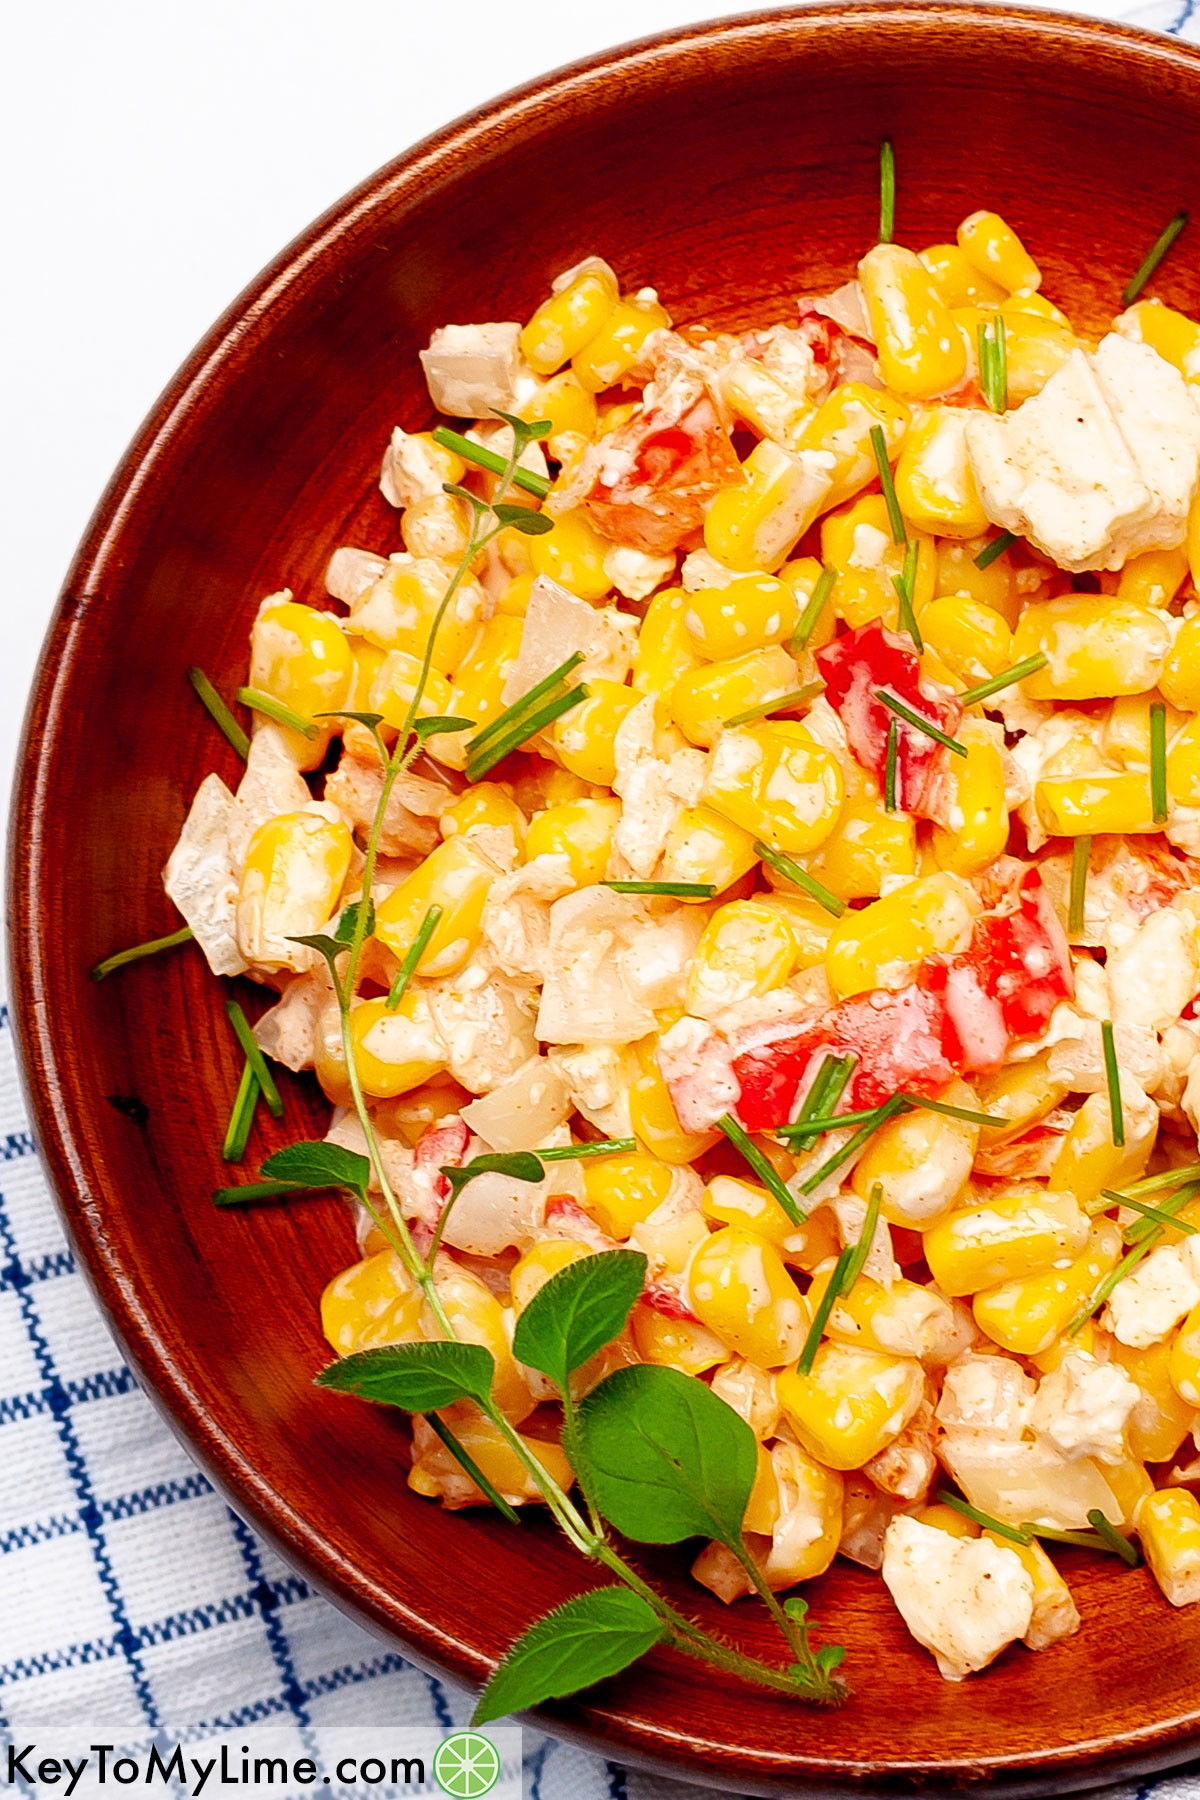 A close up image of Mexican street corn salad.